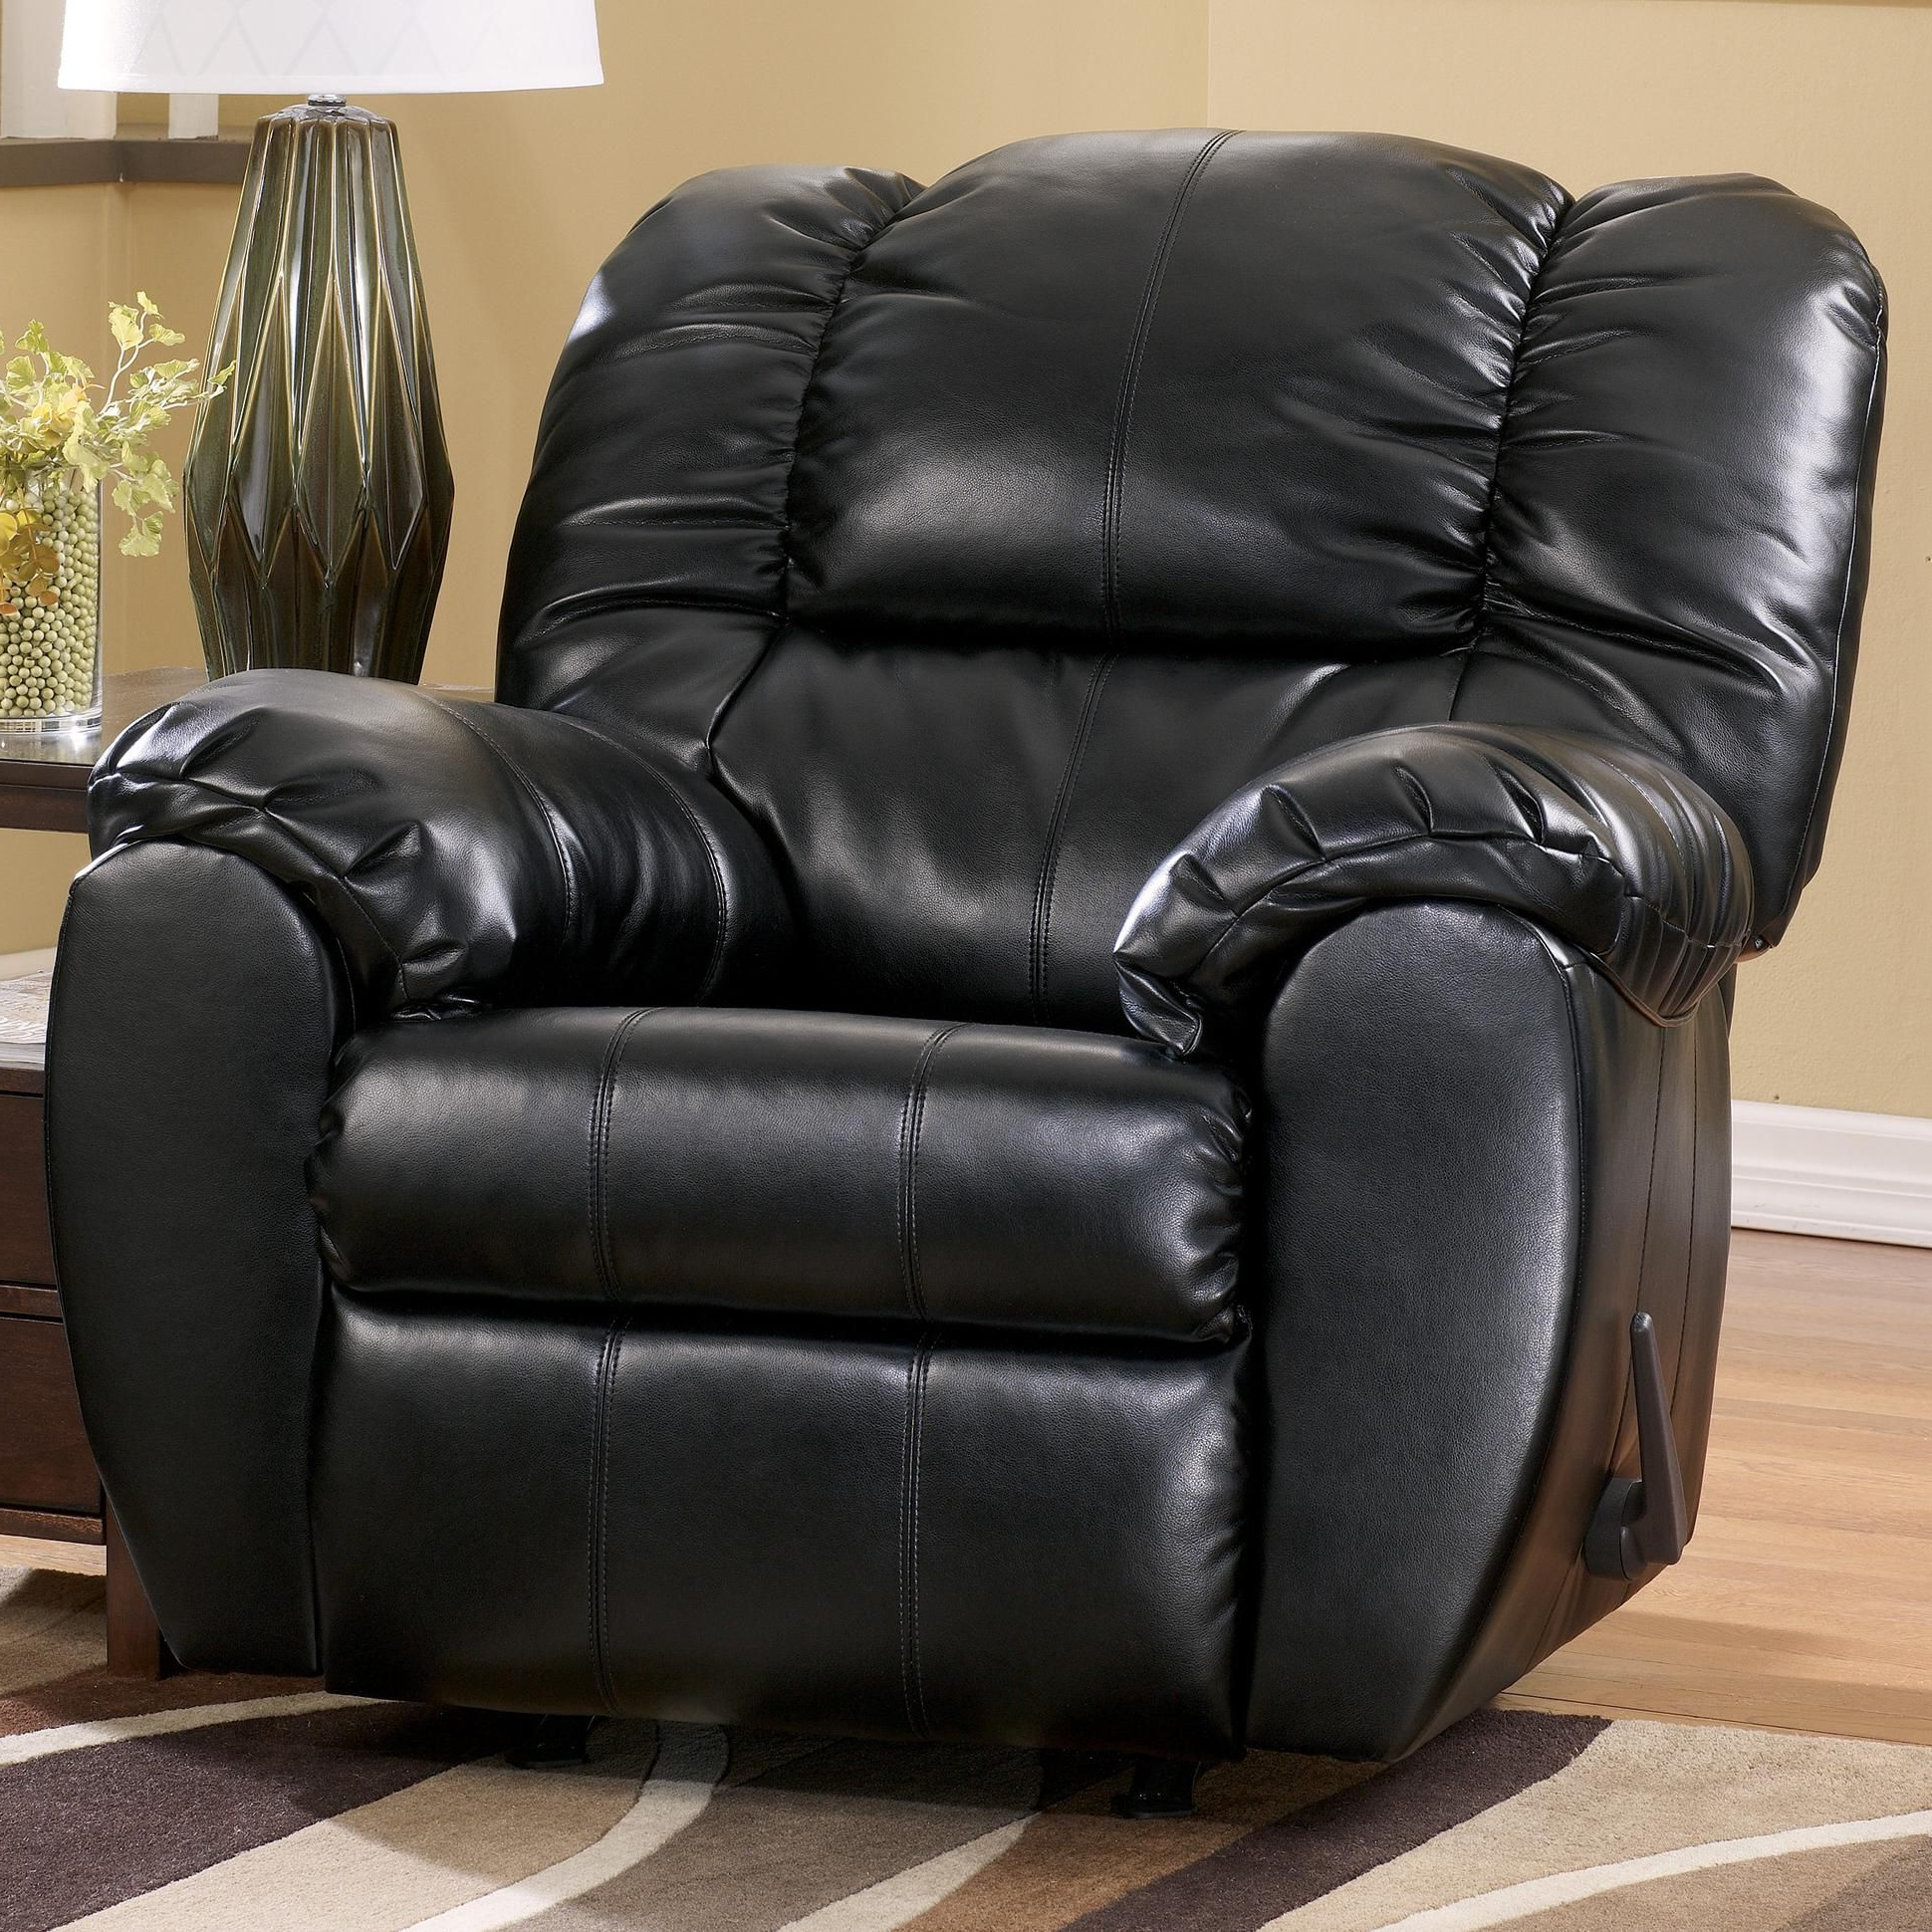 Dylan Durablend – Onyx Bonded Leather Match Rocker Recliner Pertaining To Current Declan 3 Piece Power Reclining Sectionals With Left Facing Console Loveseat (Gallery 8 of 20)